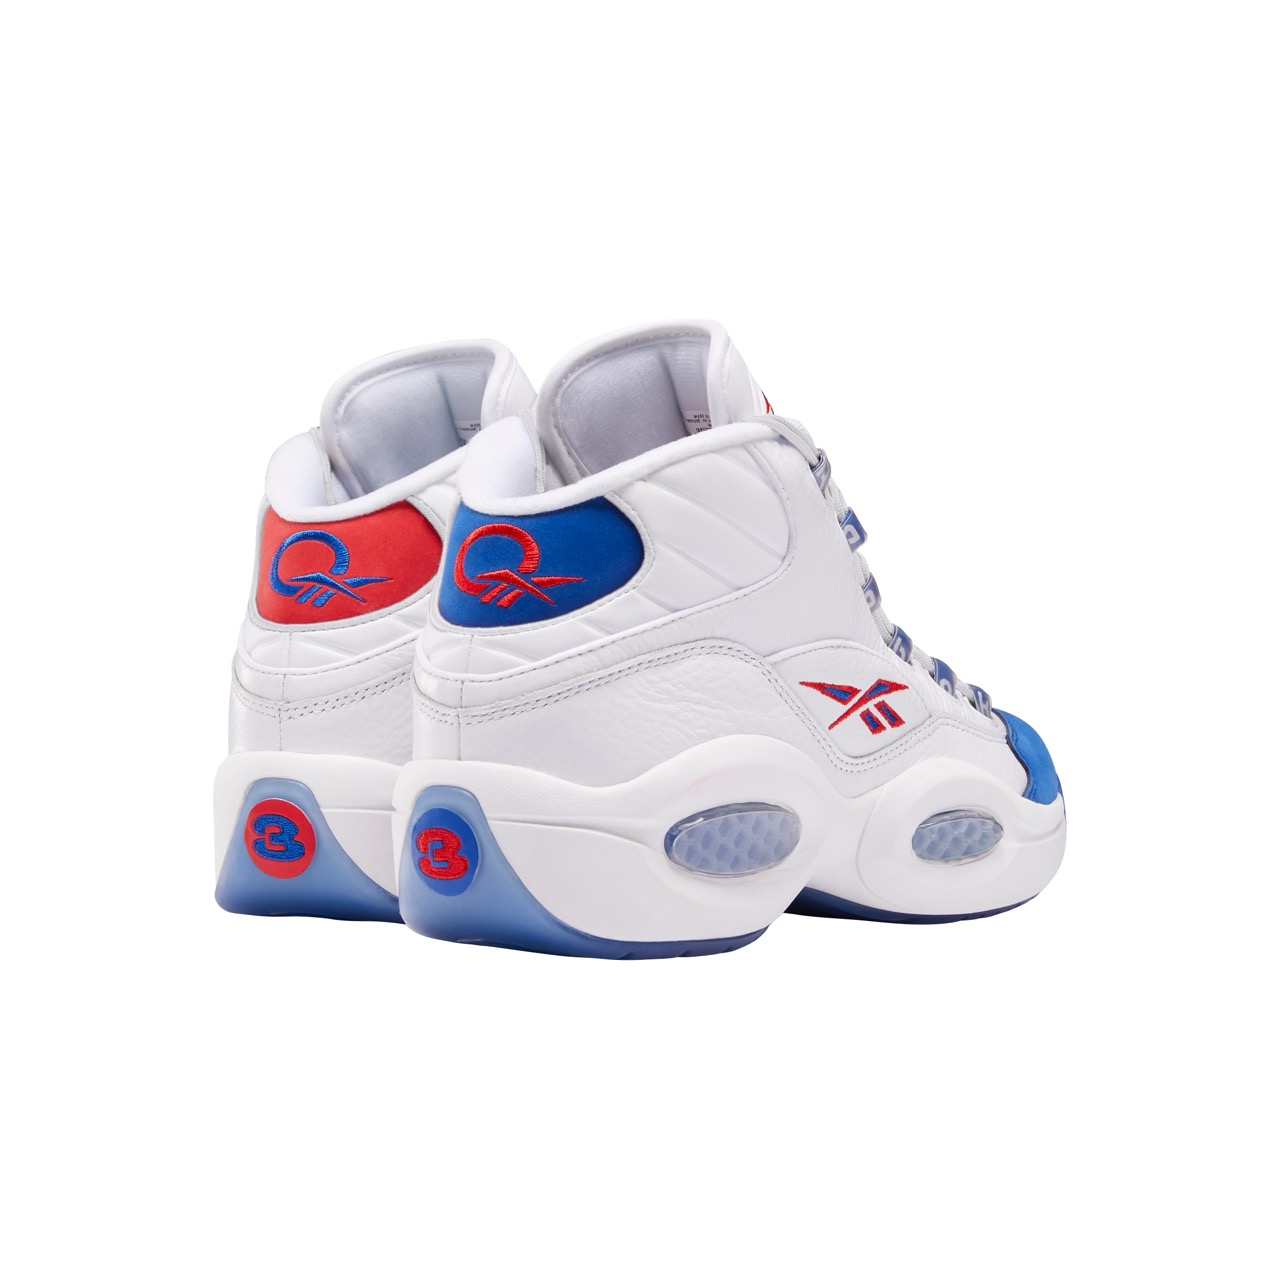 Reebok theQuestion Mid Double Cross